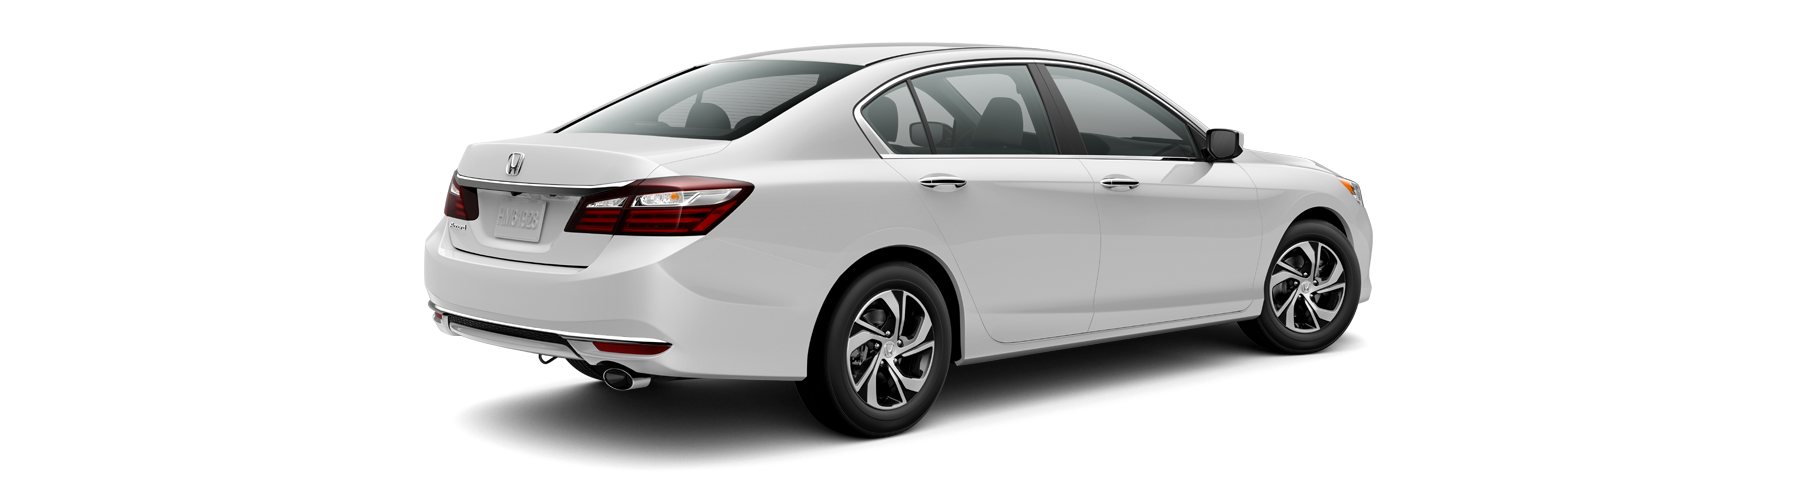 2017 Honda Accord Sedan Rear Angle